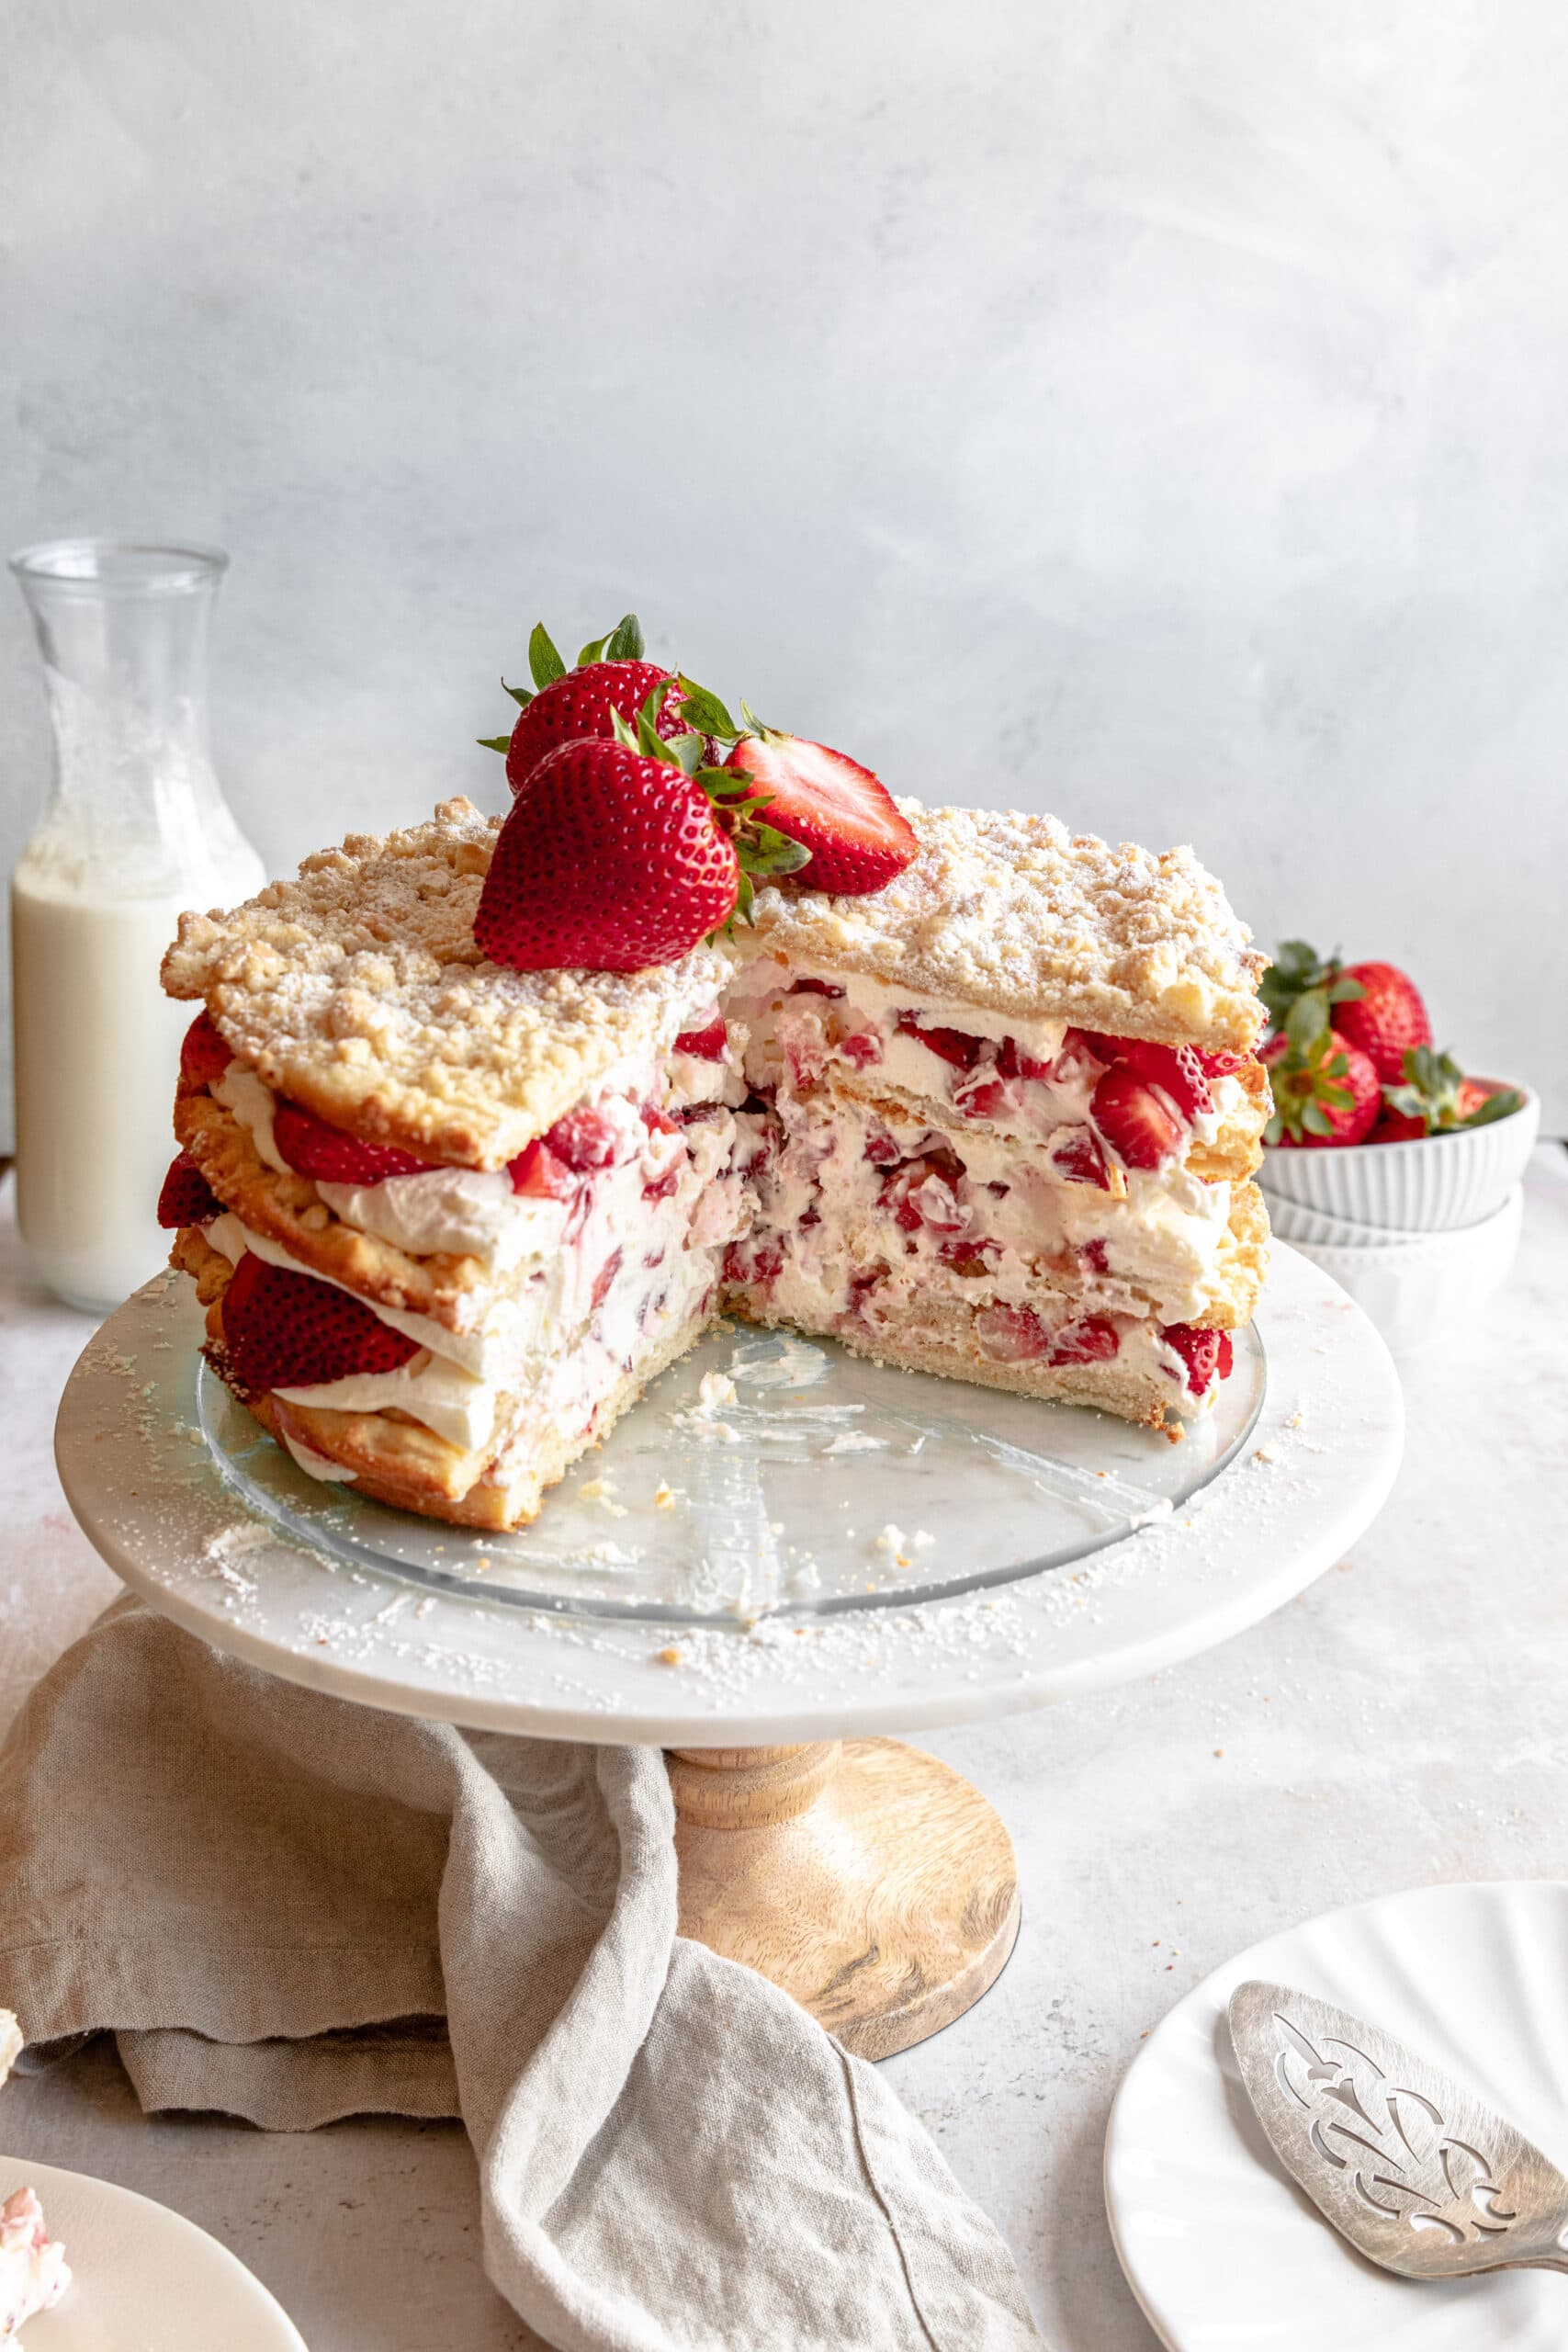 Image of the Strawberries and Cream layered cake cut into on a white cake stand.